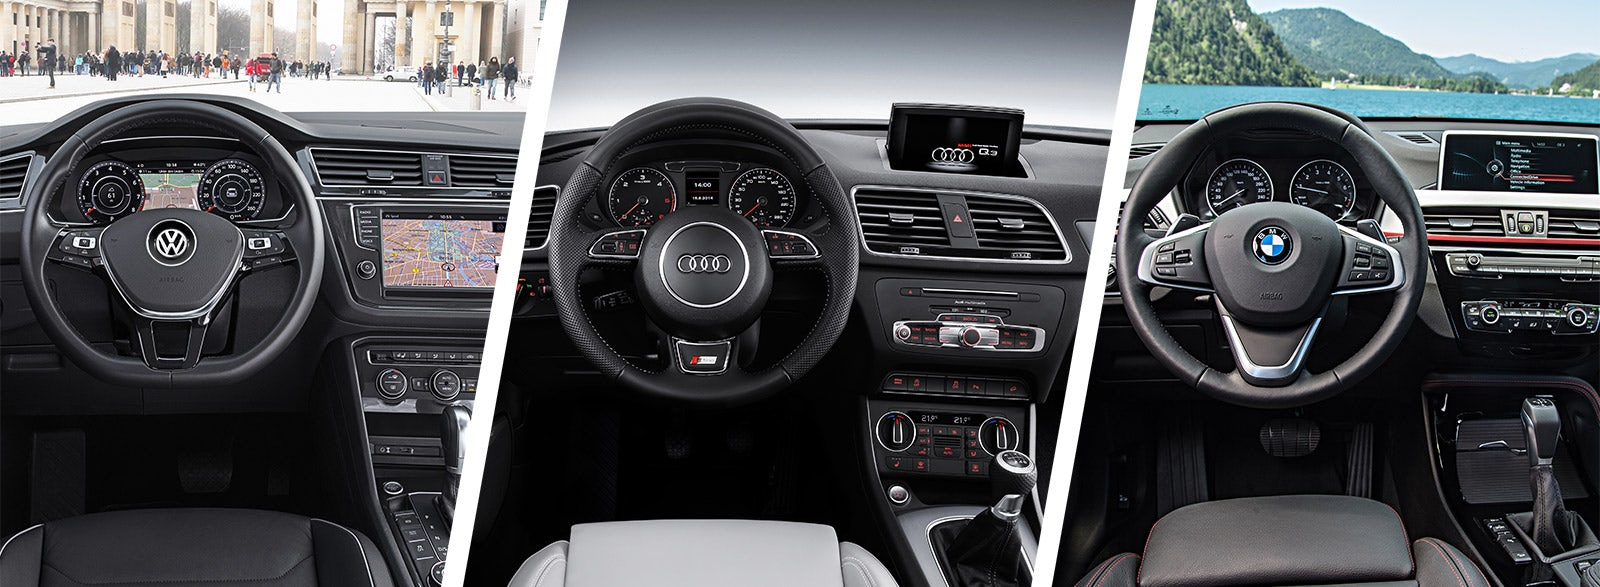 Audi Q3 Vs Vw Tiguan Bmw X1 Interior Dashboard Styling